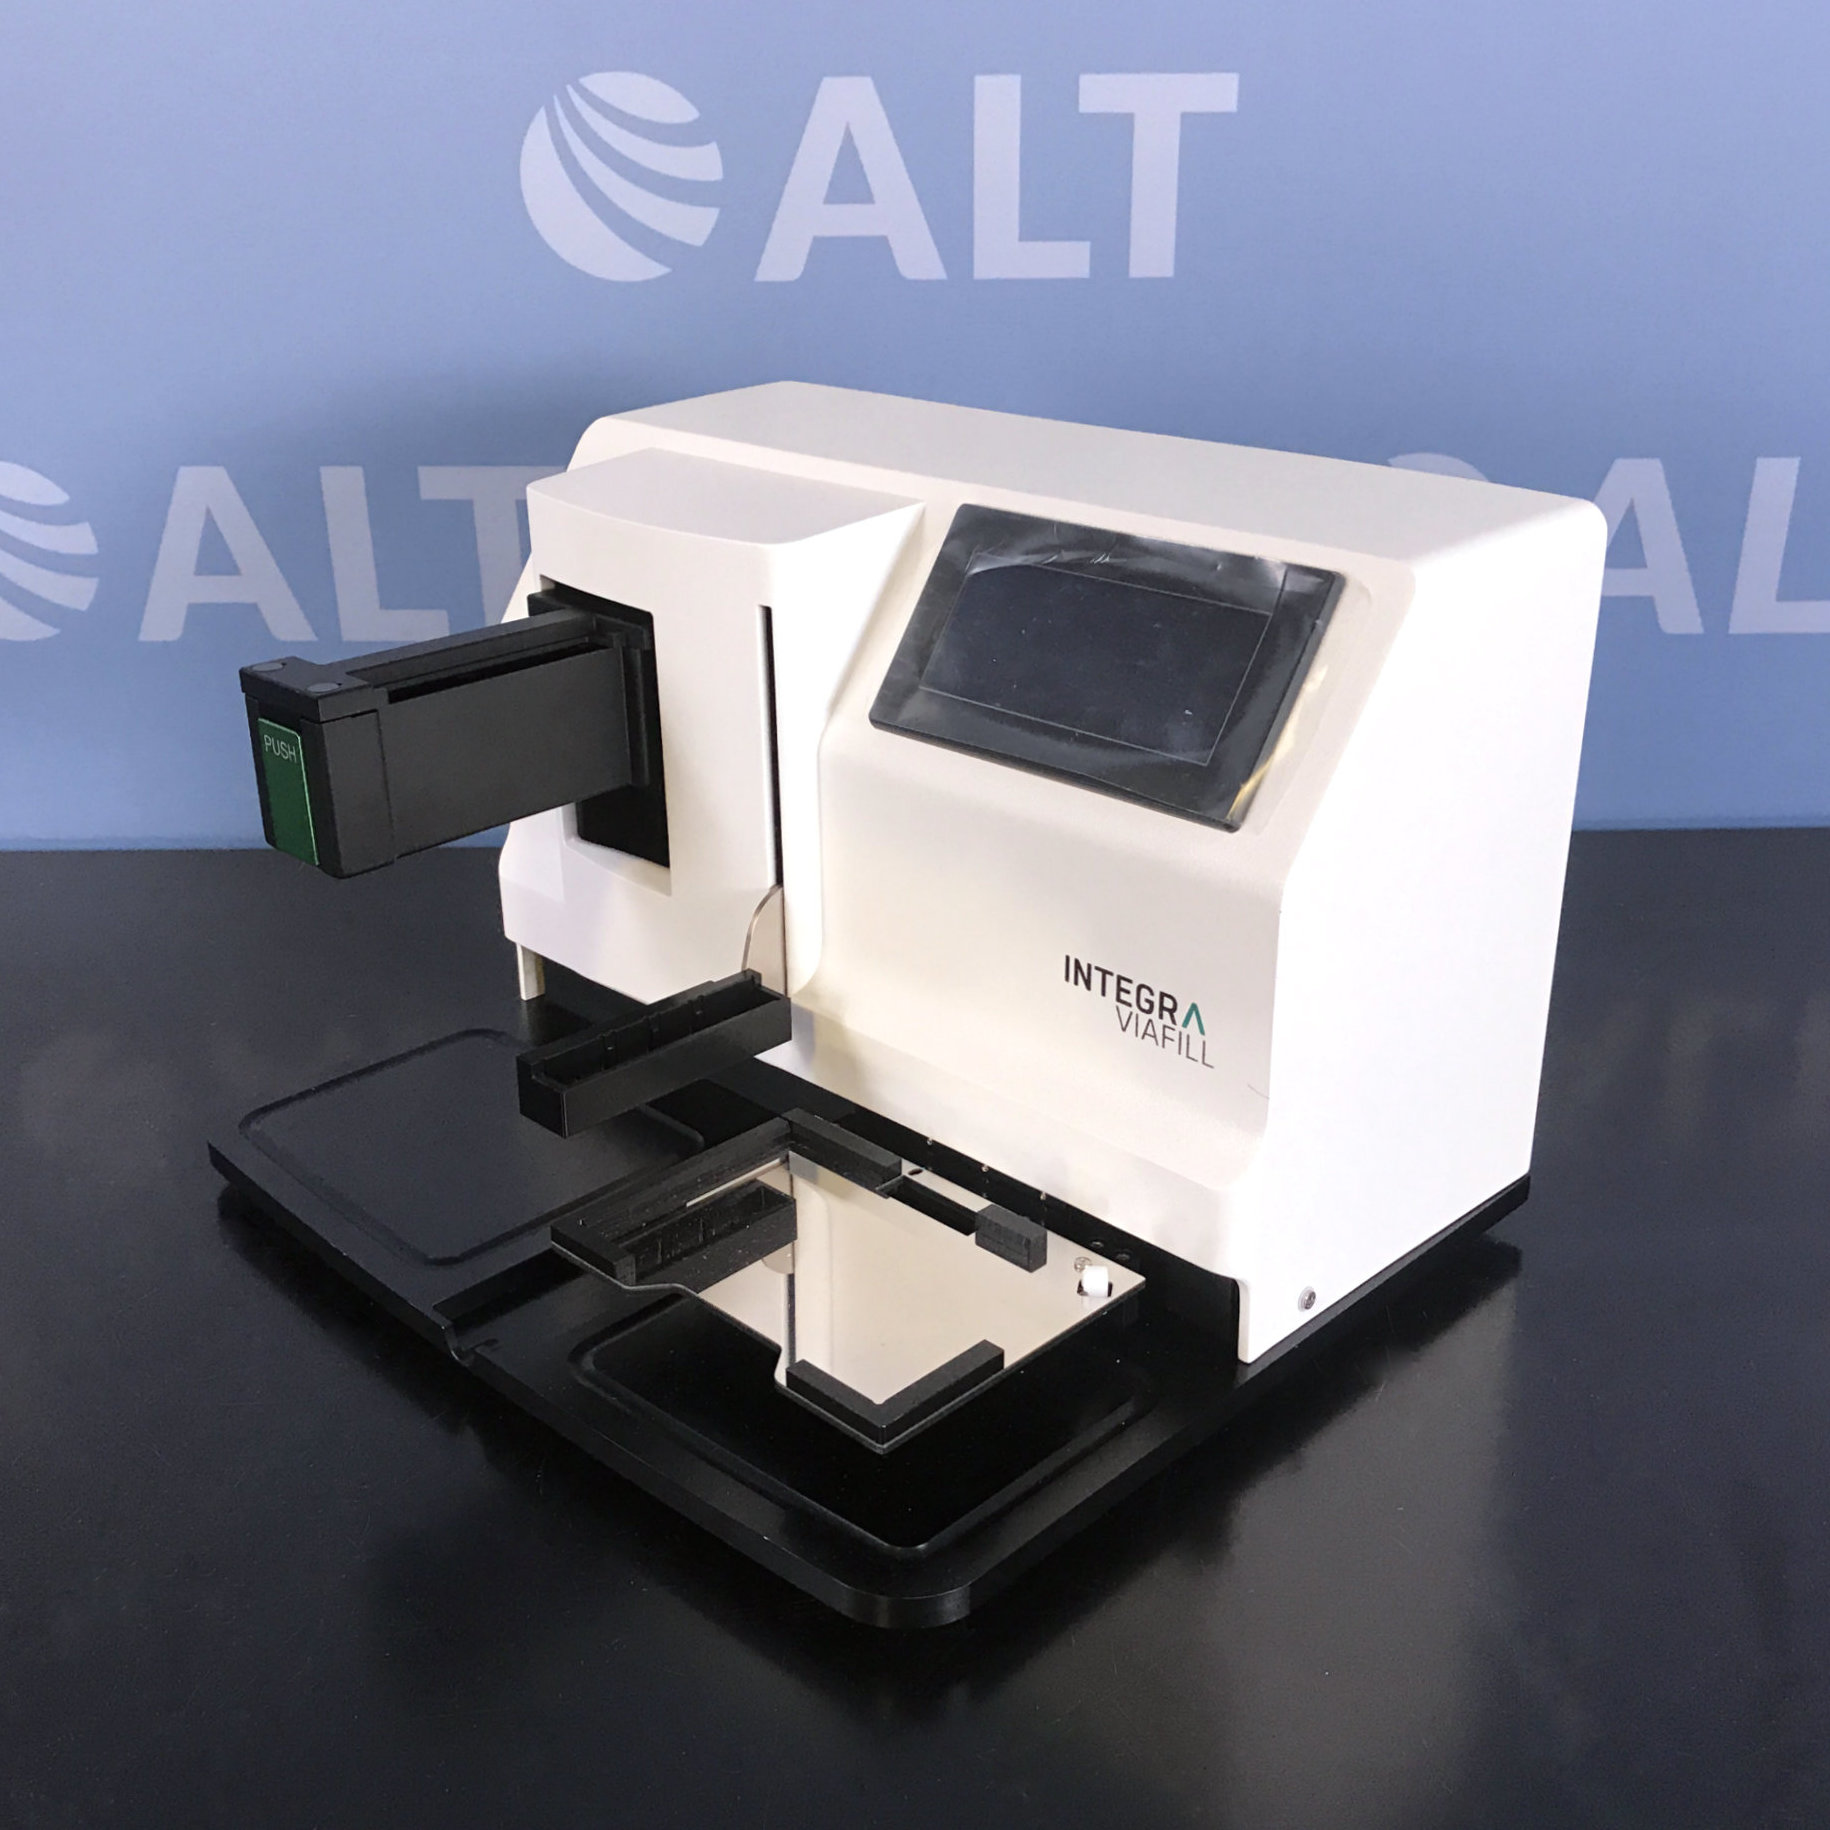 IBS Integra Biosciences Viafill Rapid Reagent Dispenser Image